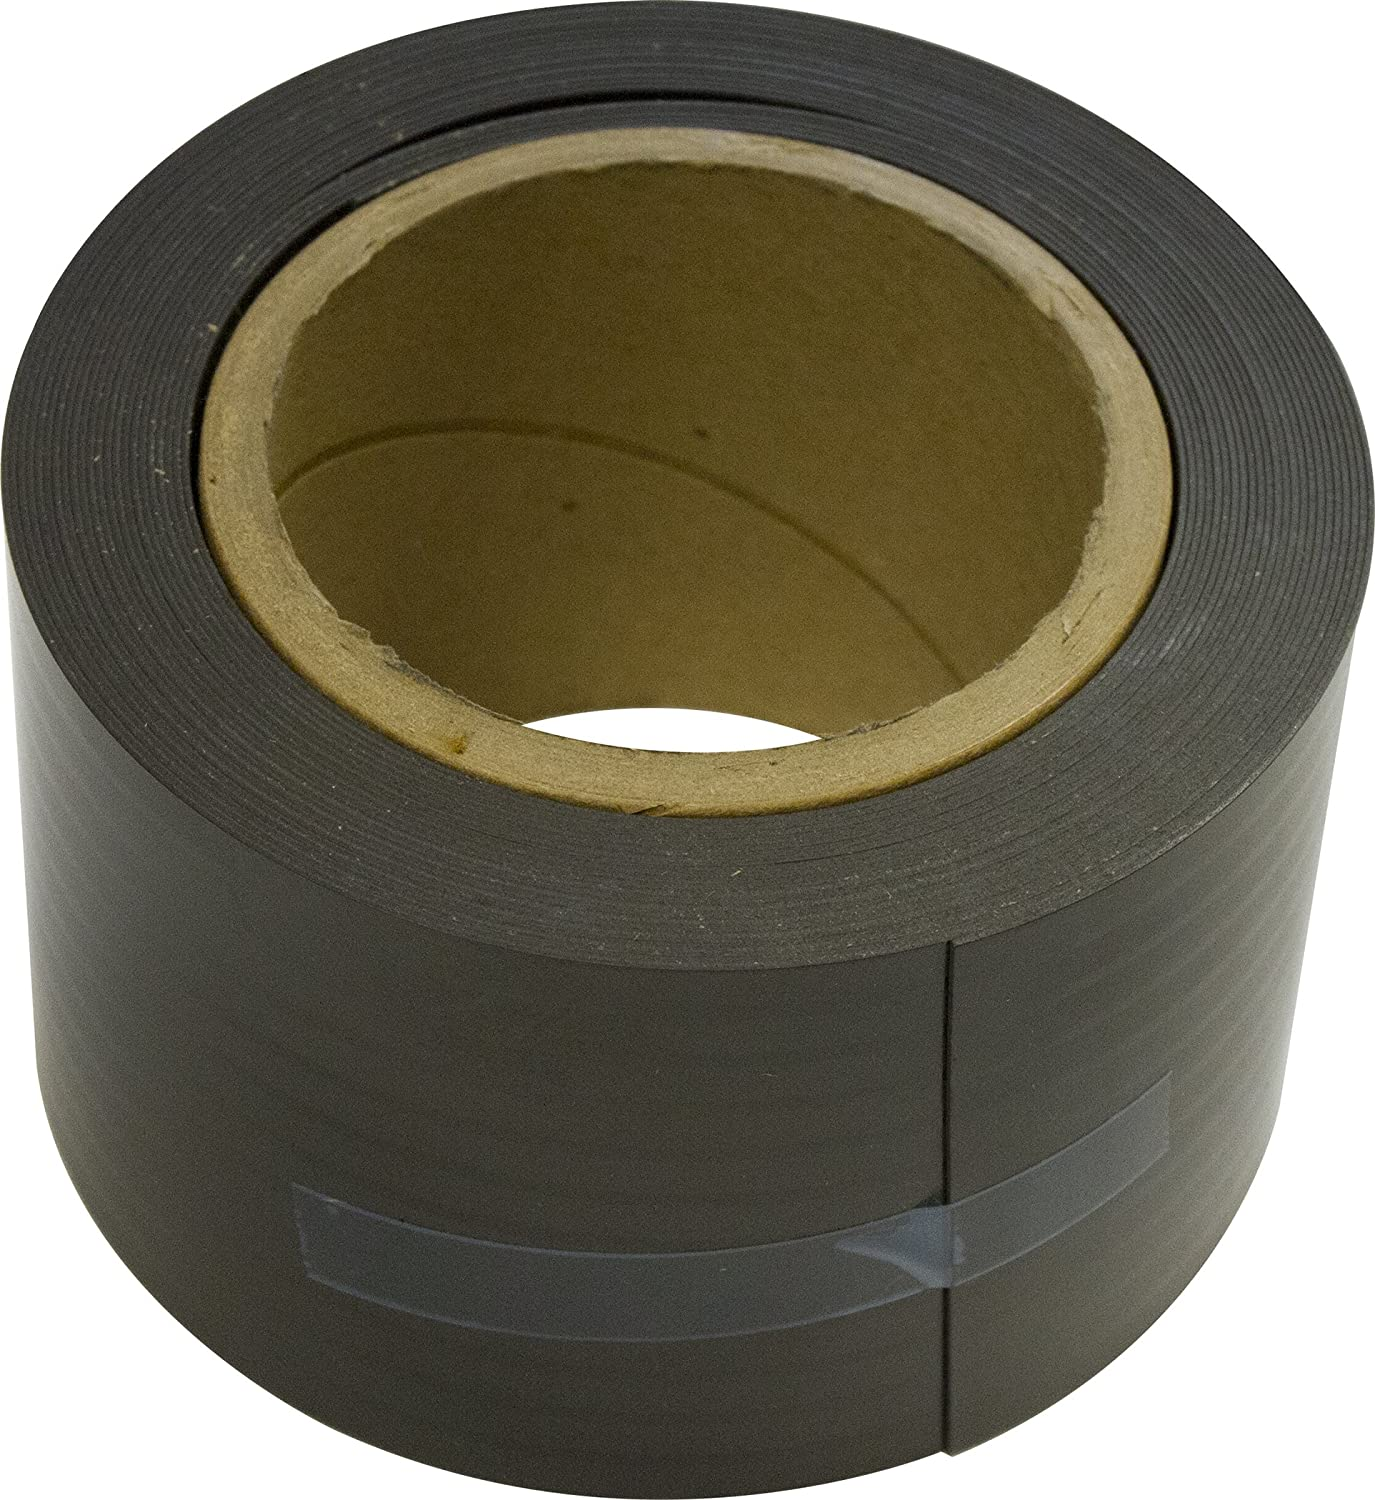 New color MAG-MATE MRN030X0300X050 Flexible Magnet Without Material Adhesi Kansas City Mall